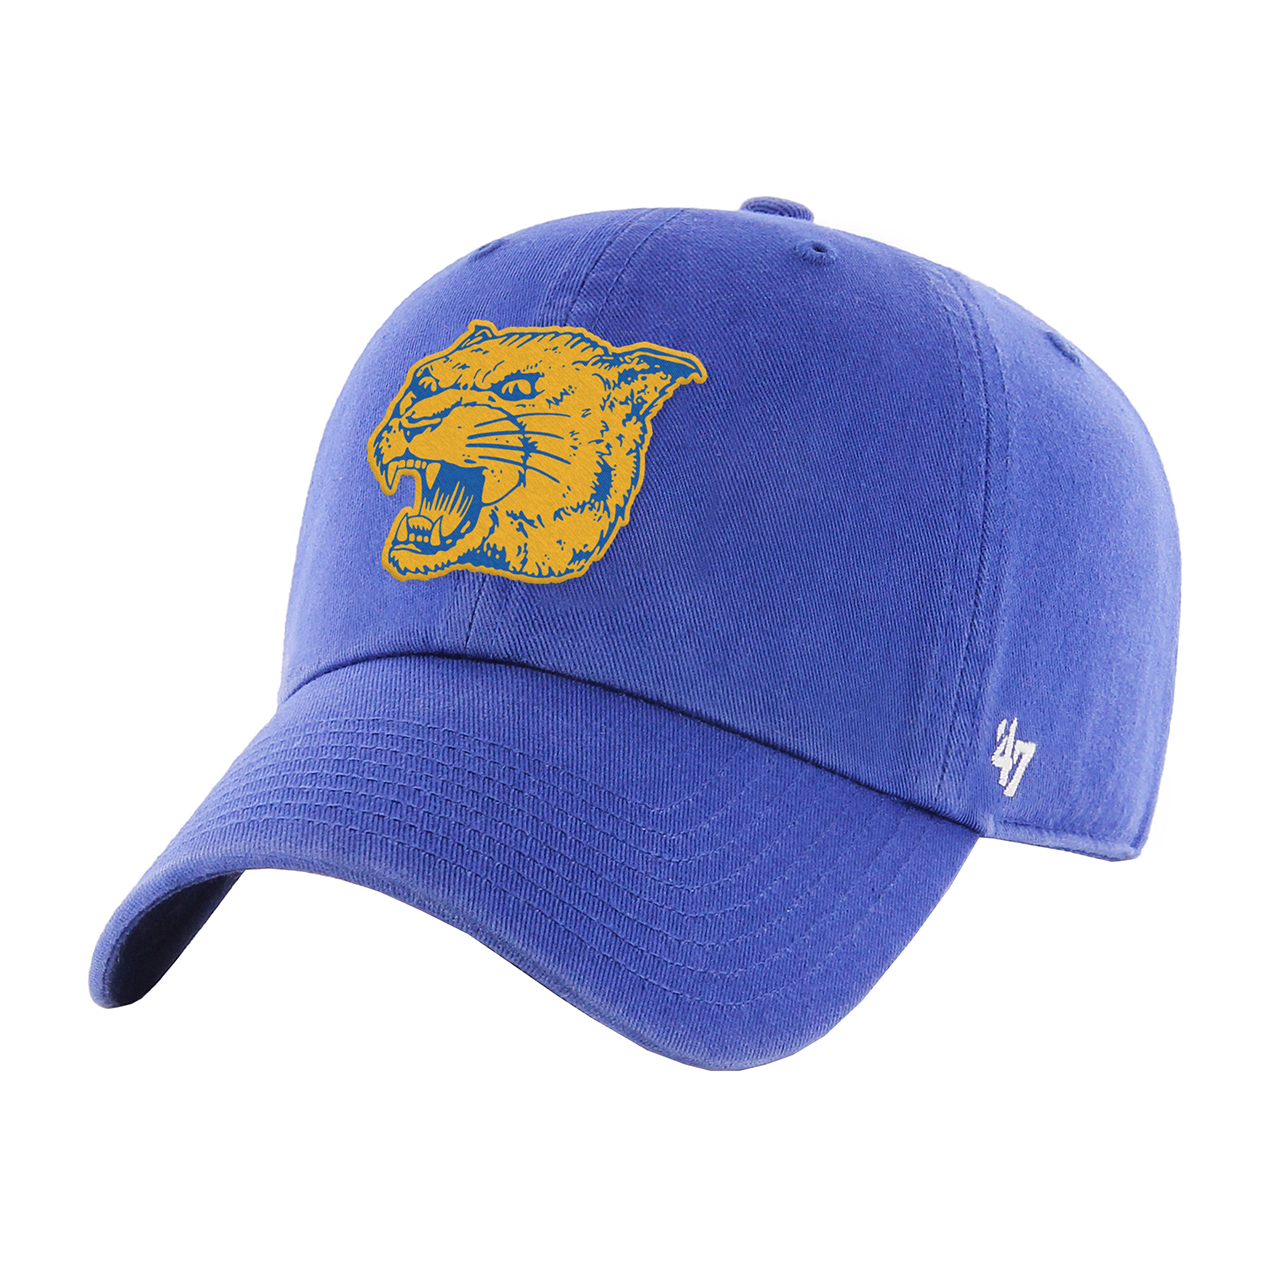 Image For 47 Brand Royal Panther Hat